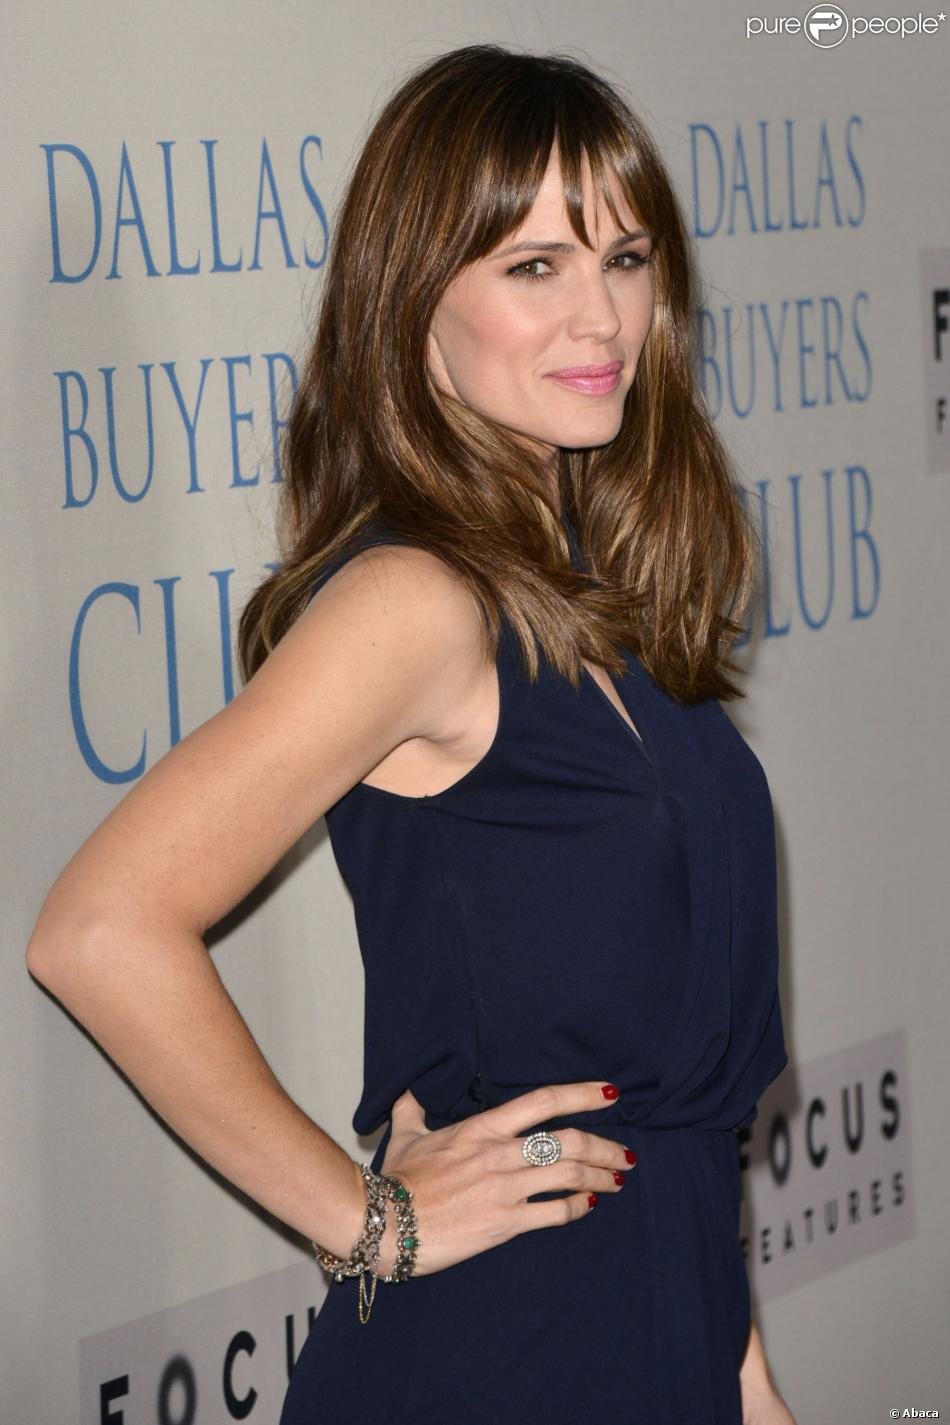 Jennifer Garner à la première de Dallas Buyers Club à Beverly Hills, Los Angeles, le 17 octobre 2013.